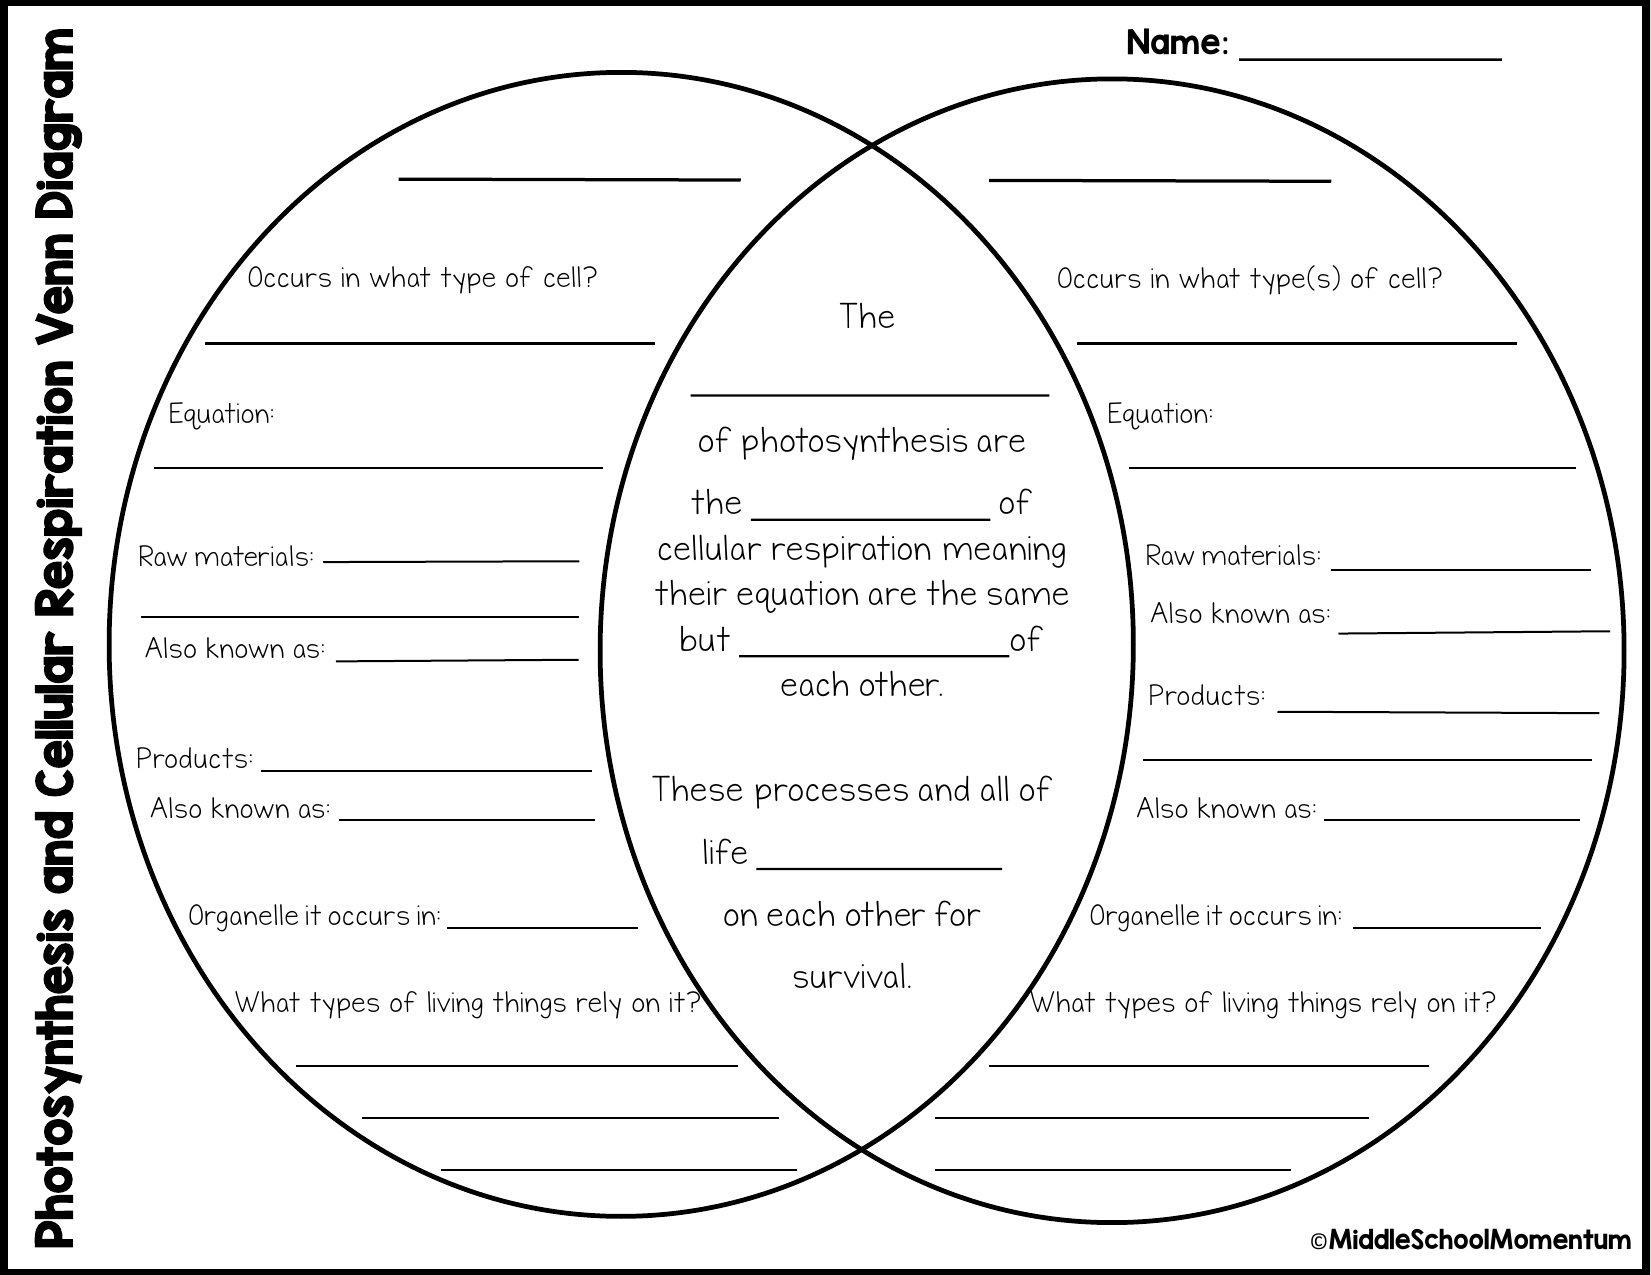 Venn Diagram Of Photosynthesis And Cellular Respiration